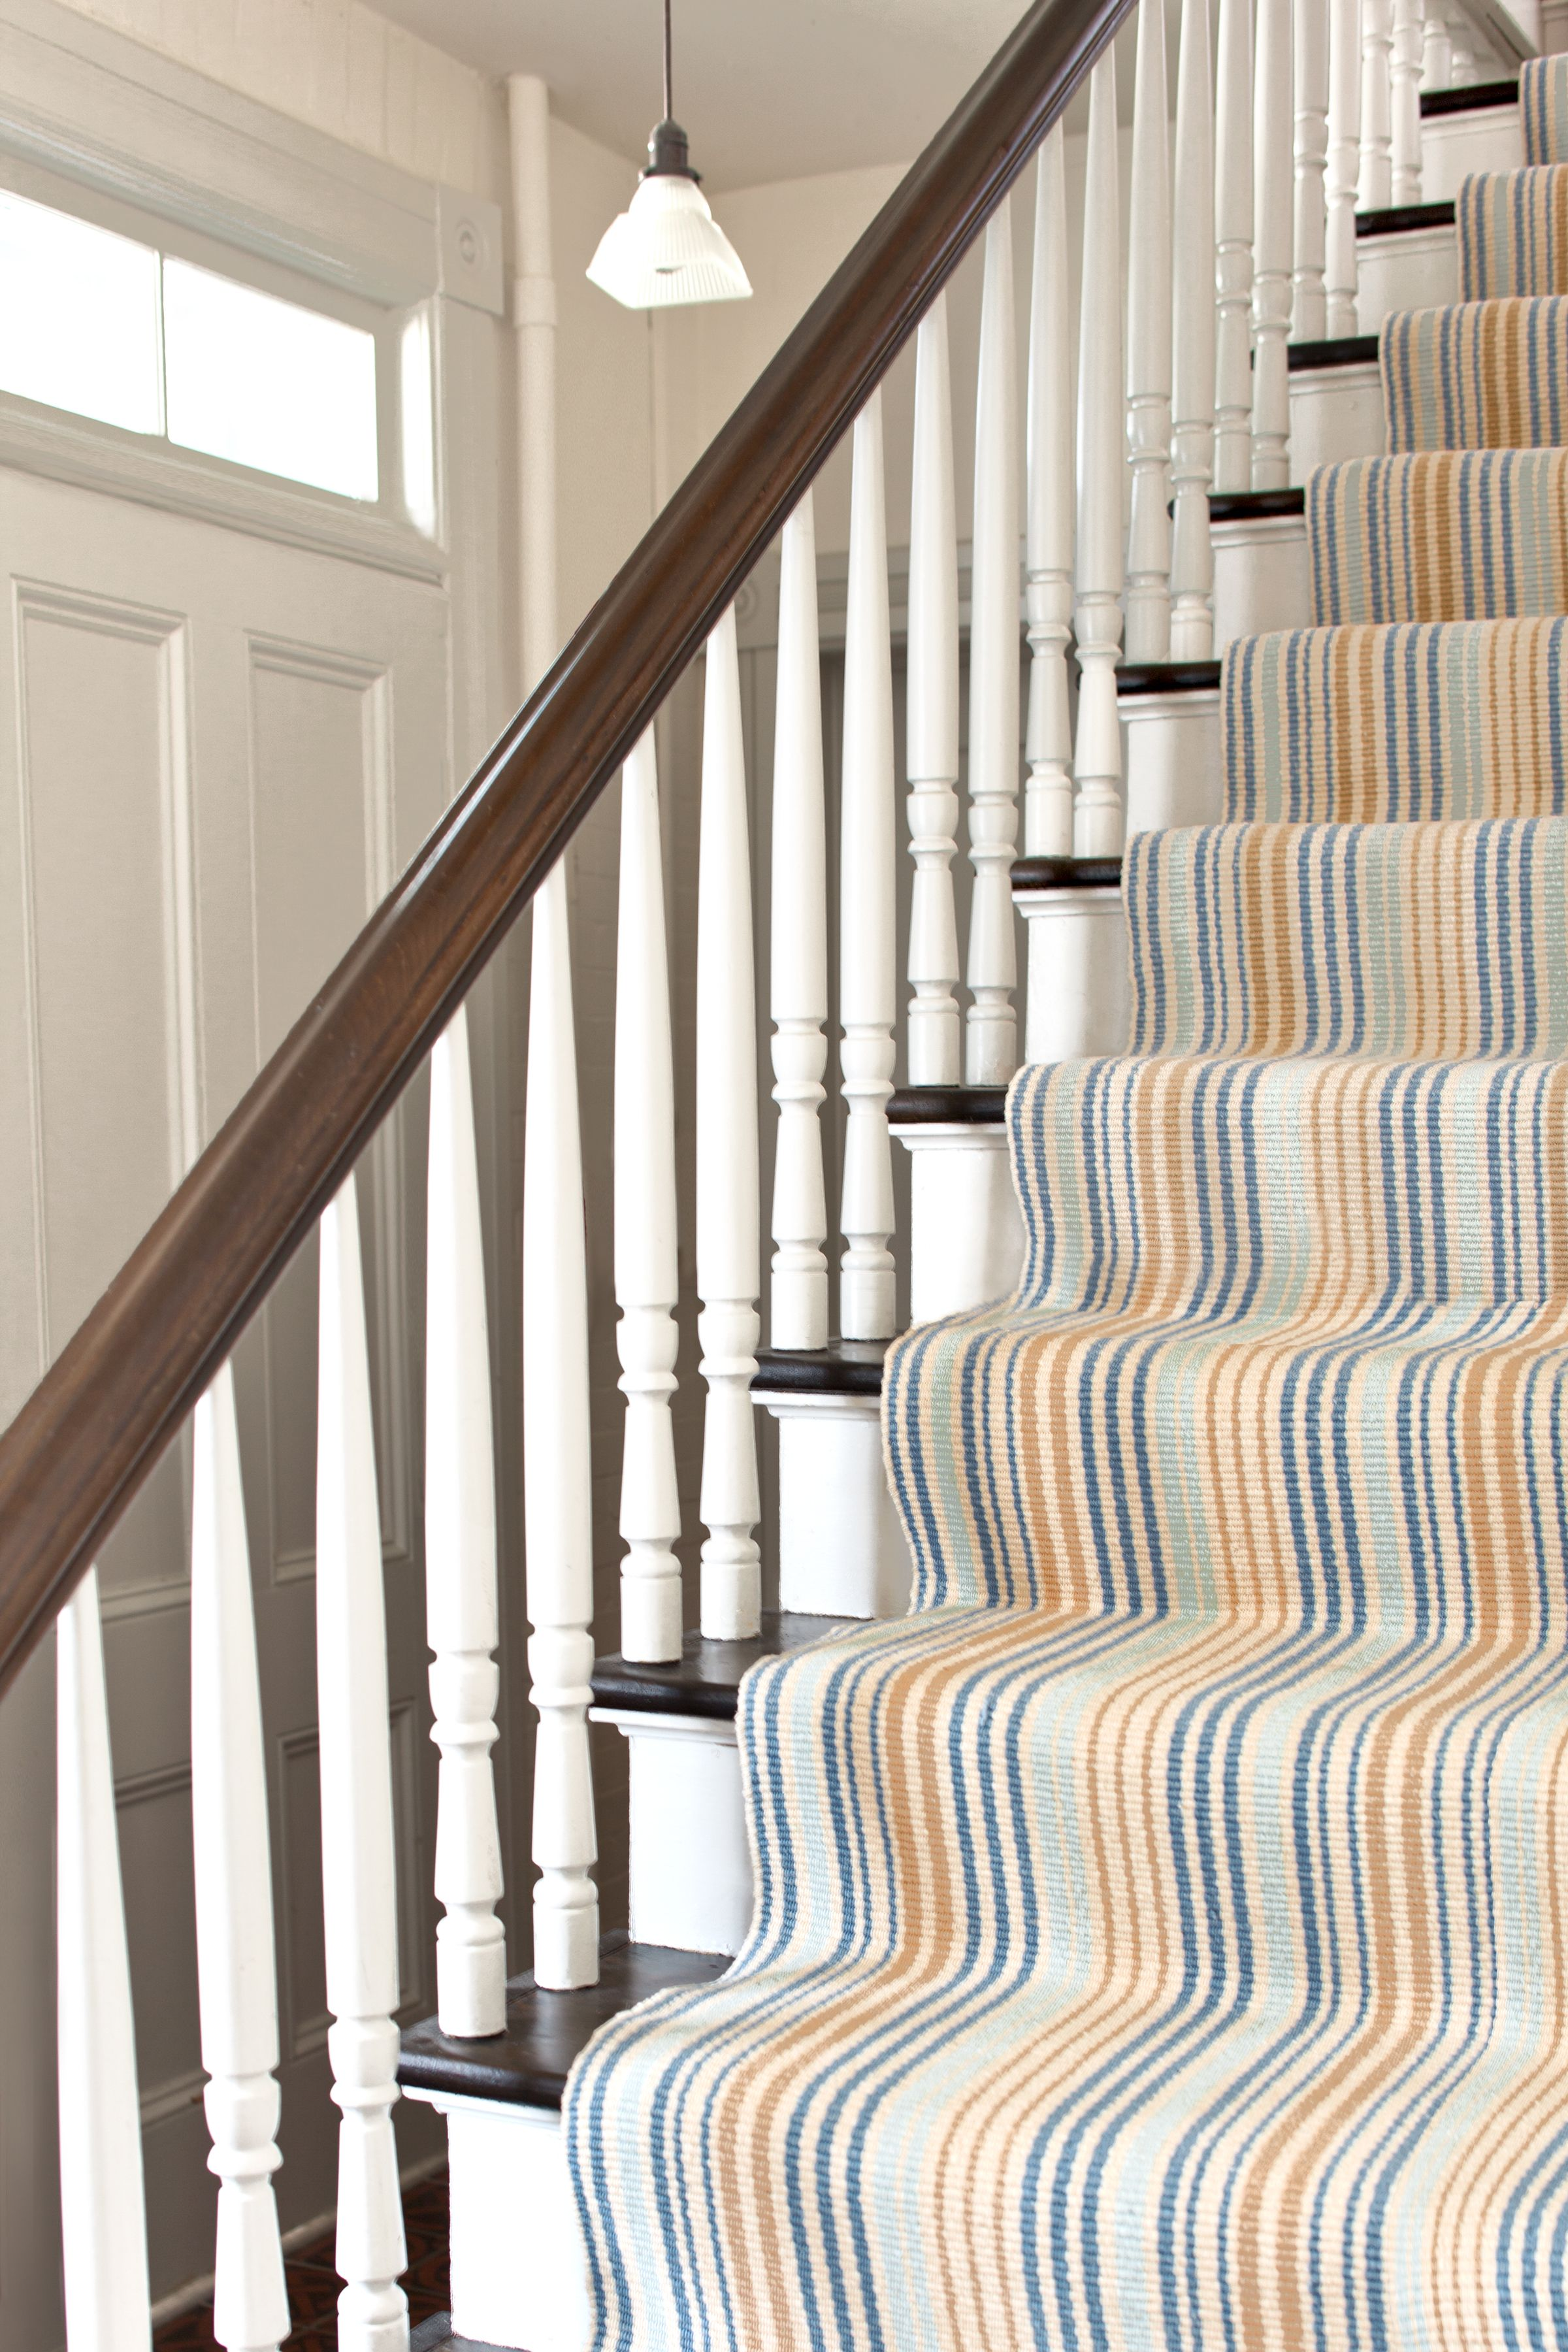 Best How To Choose A Runner Rug For A Stair Installation Stair Installation Stairs Stair Runner 400 x 300